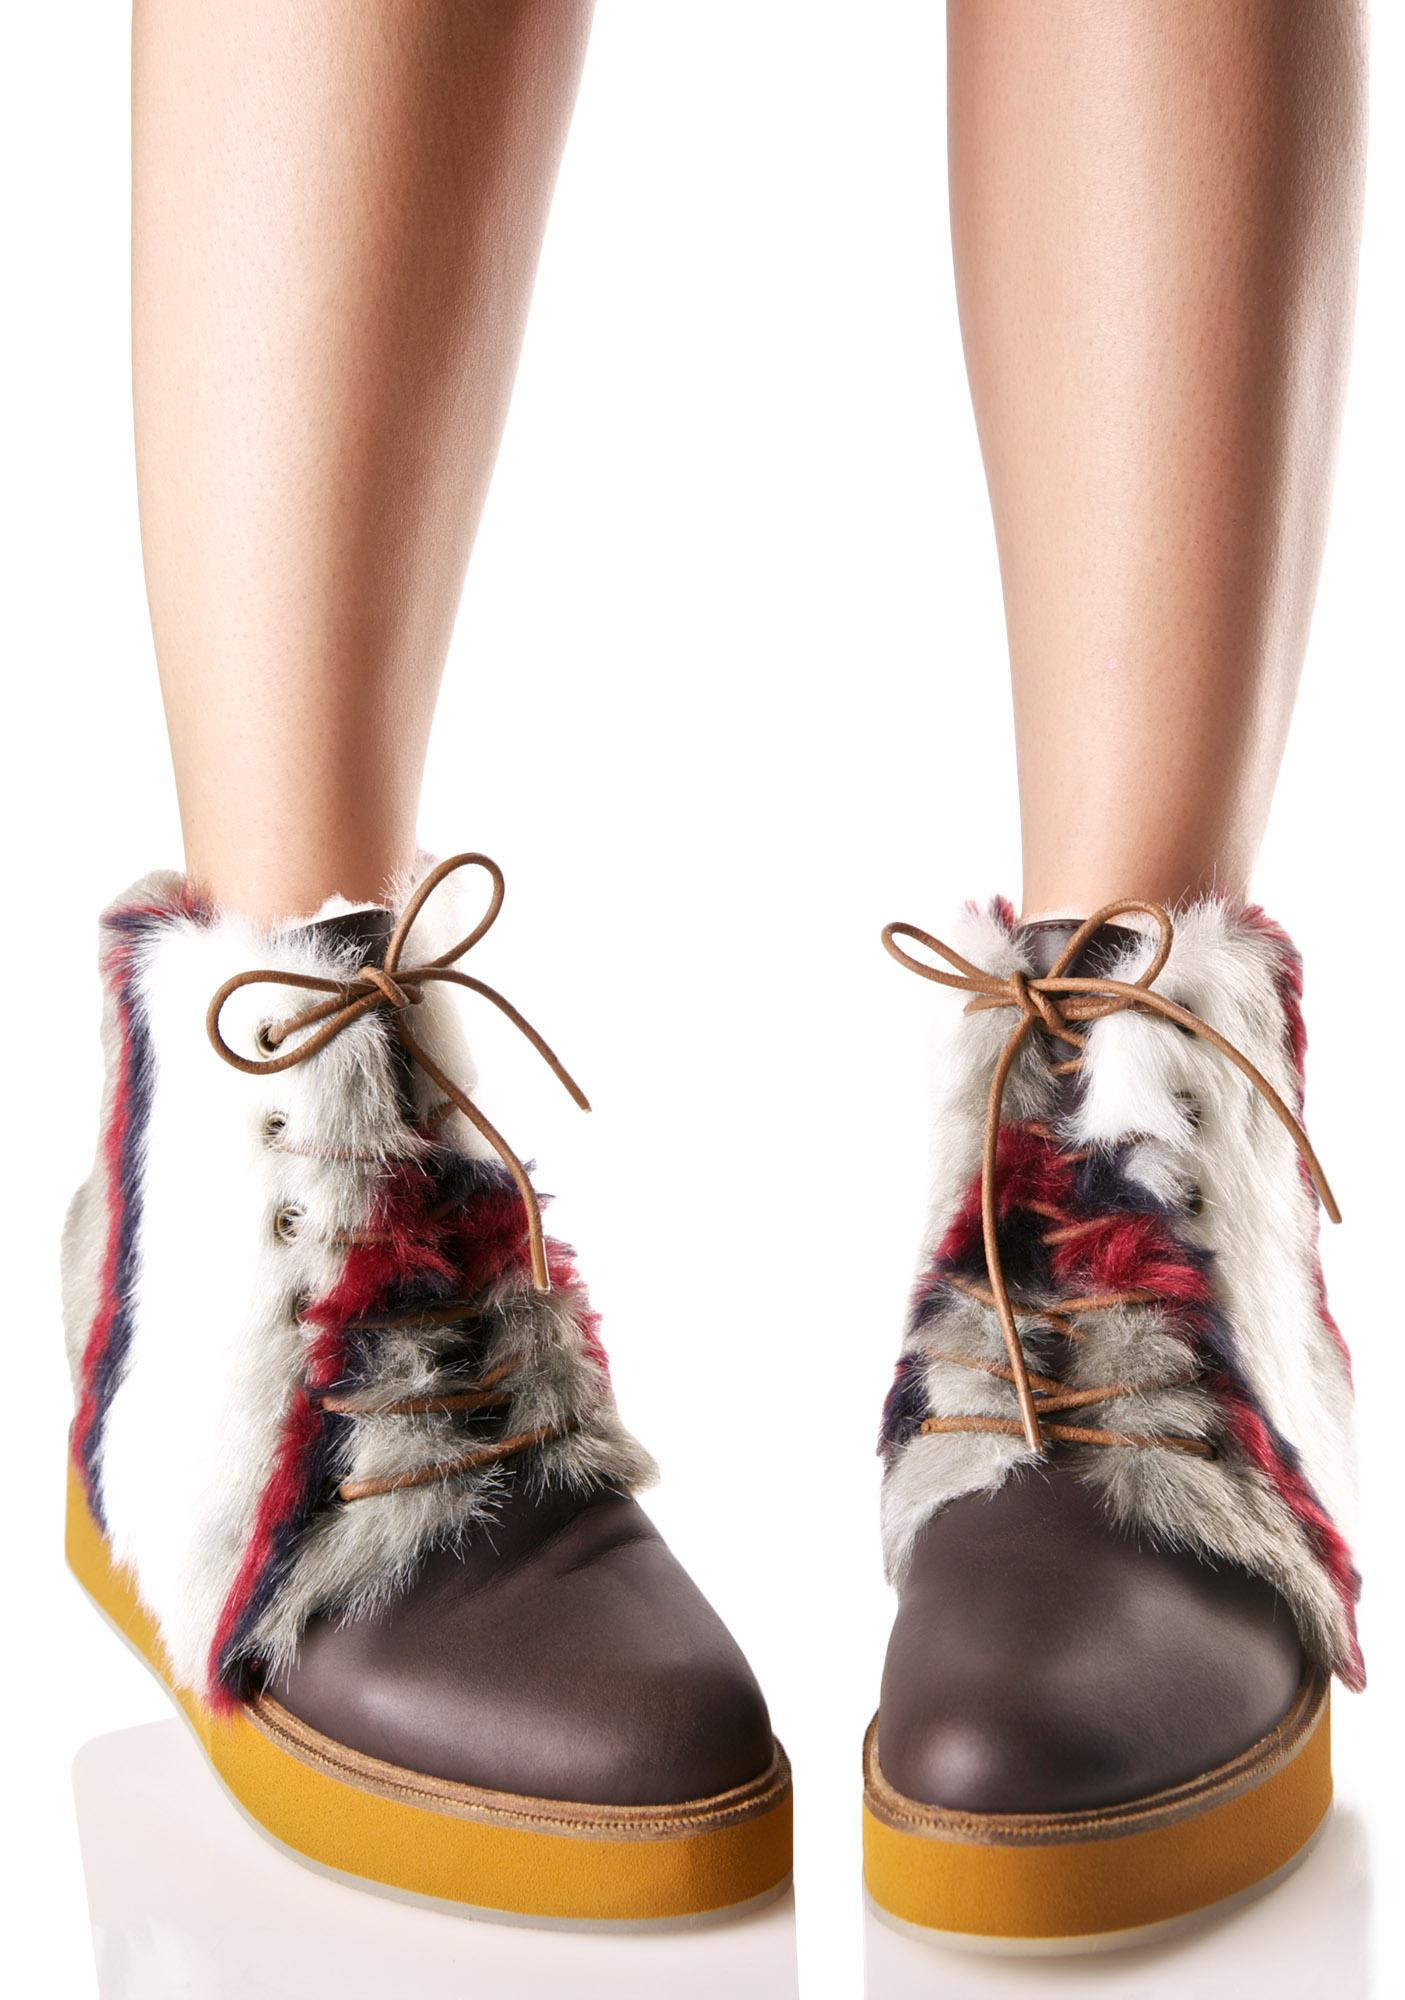 Australia Luxe Collective Bundaburg Striped Boots